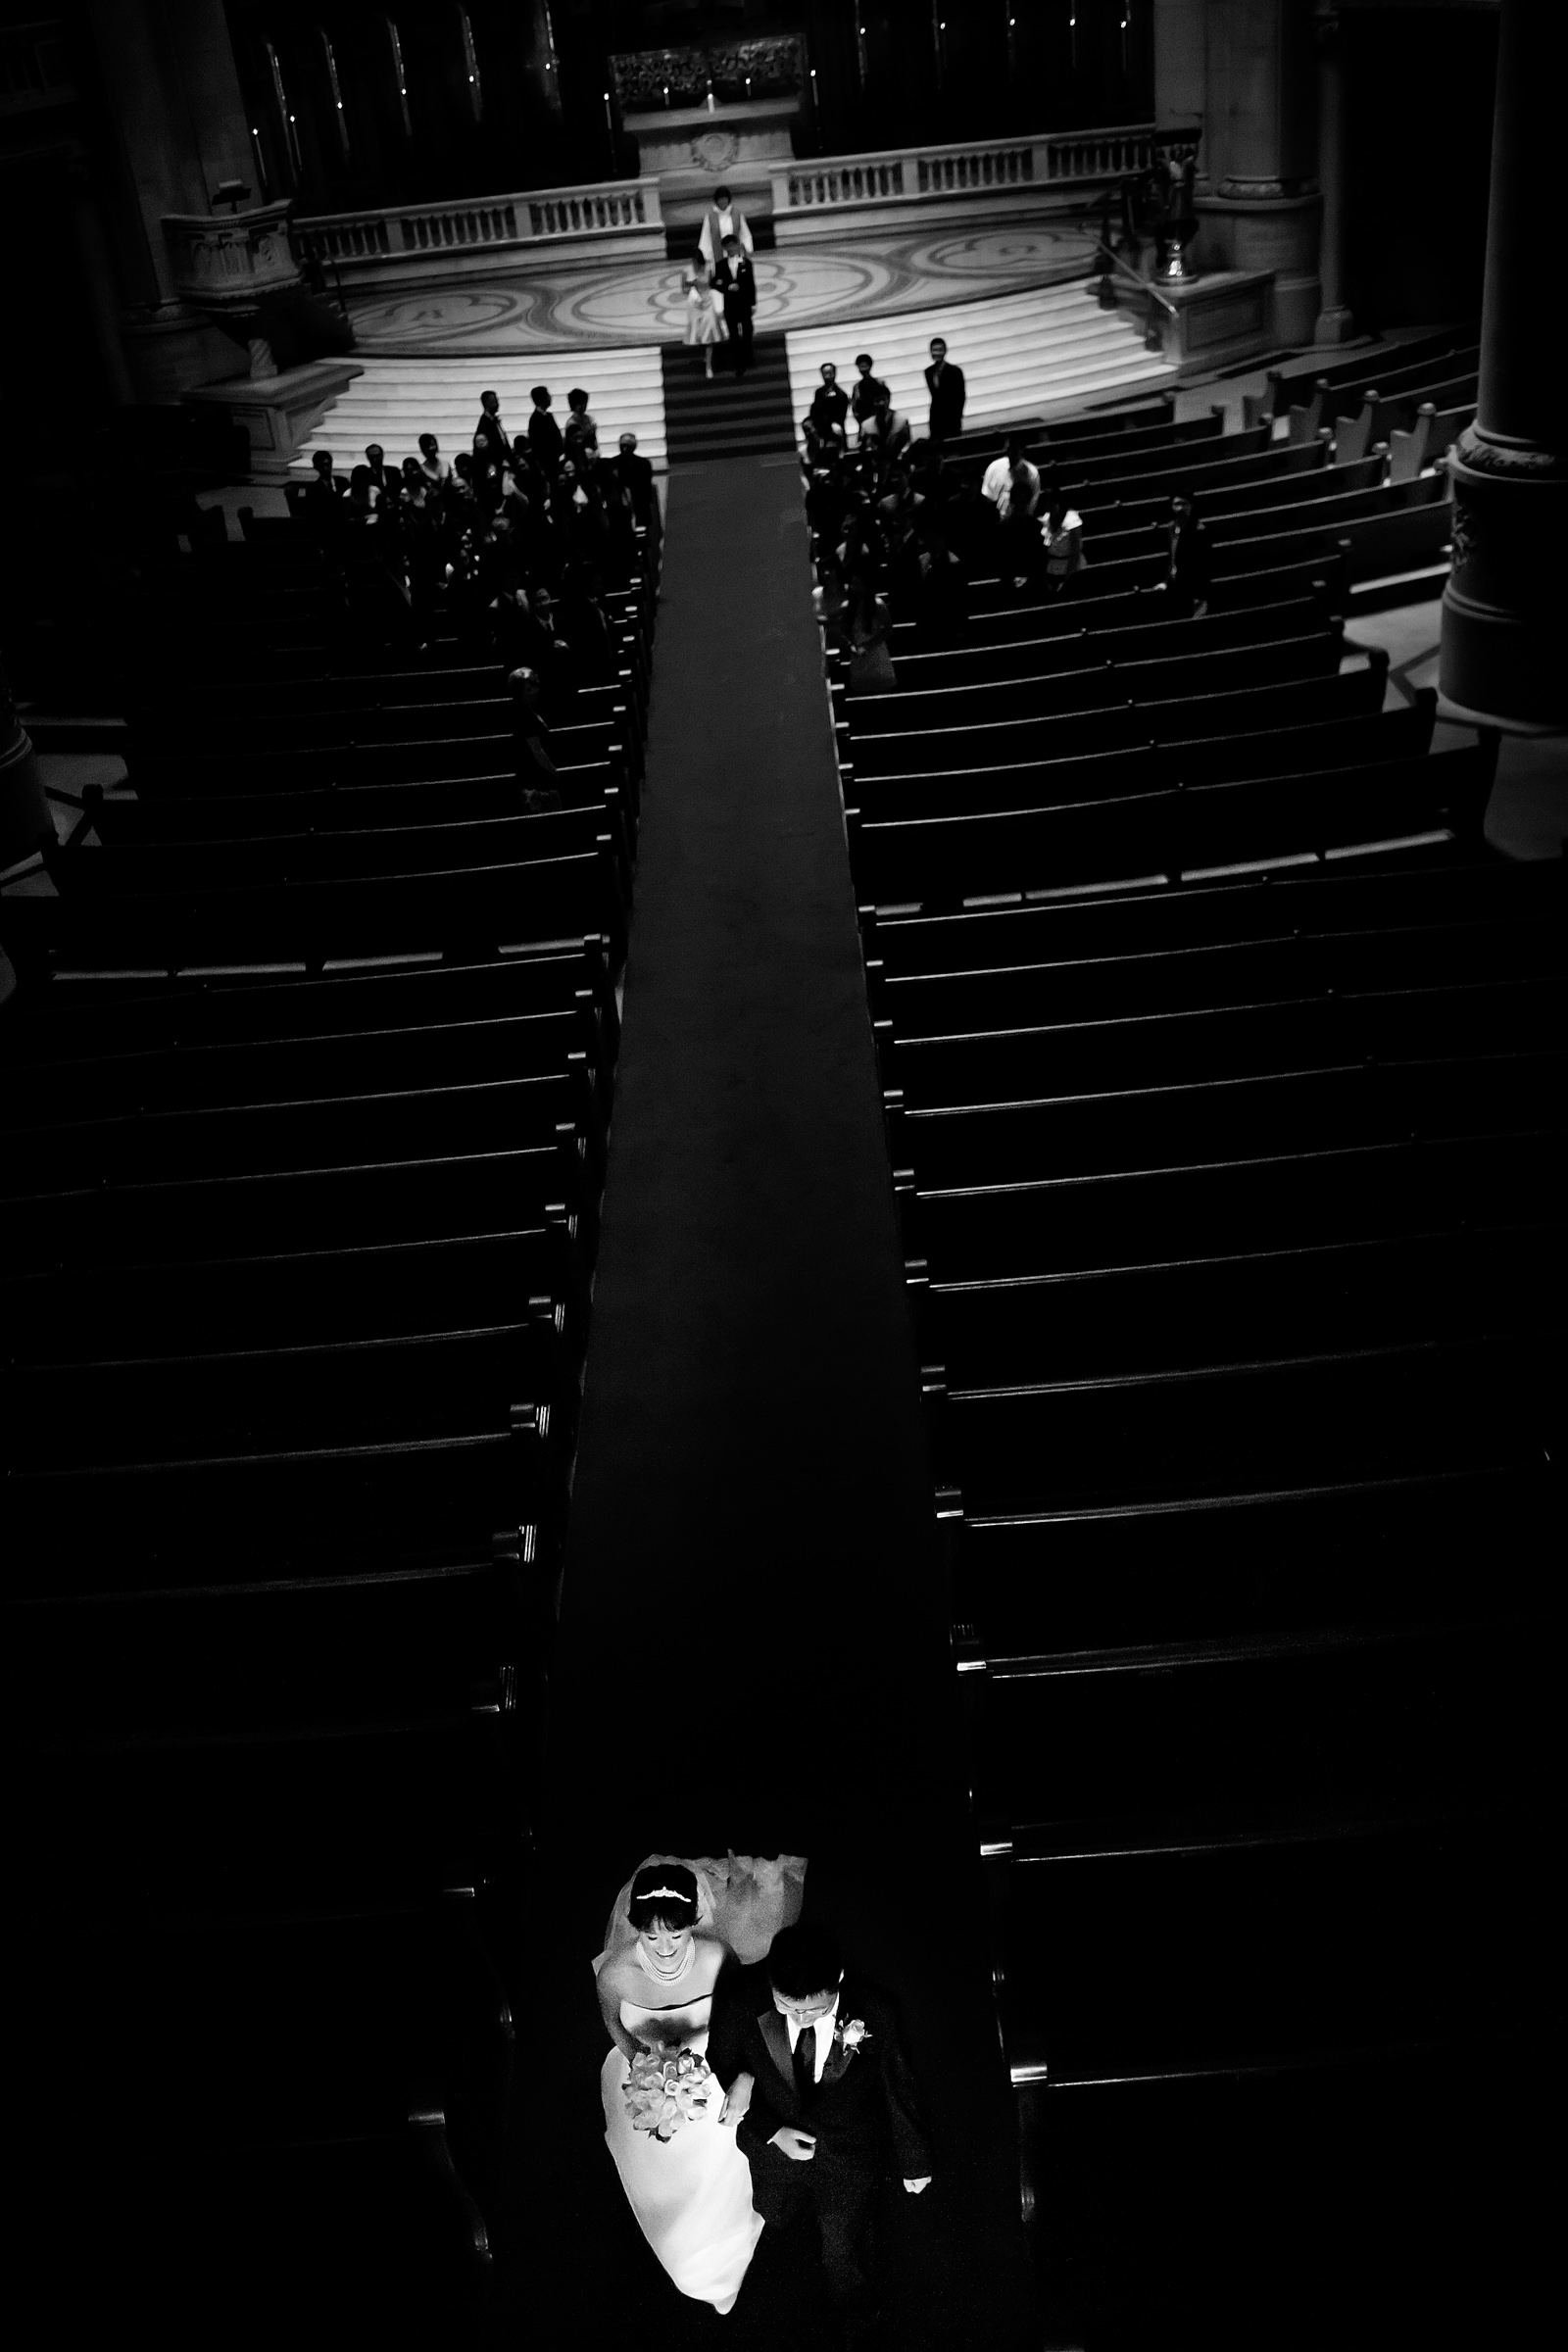 creative balcony view of ceremony recessional - photo by Chrisman Studios